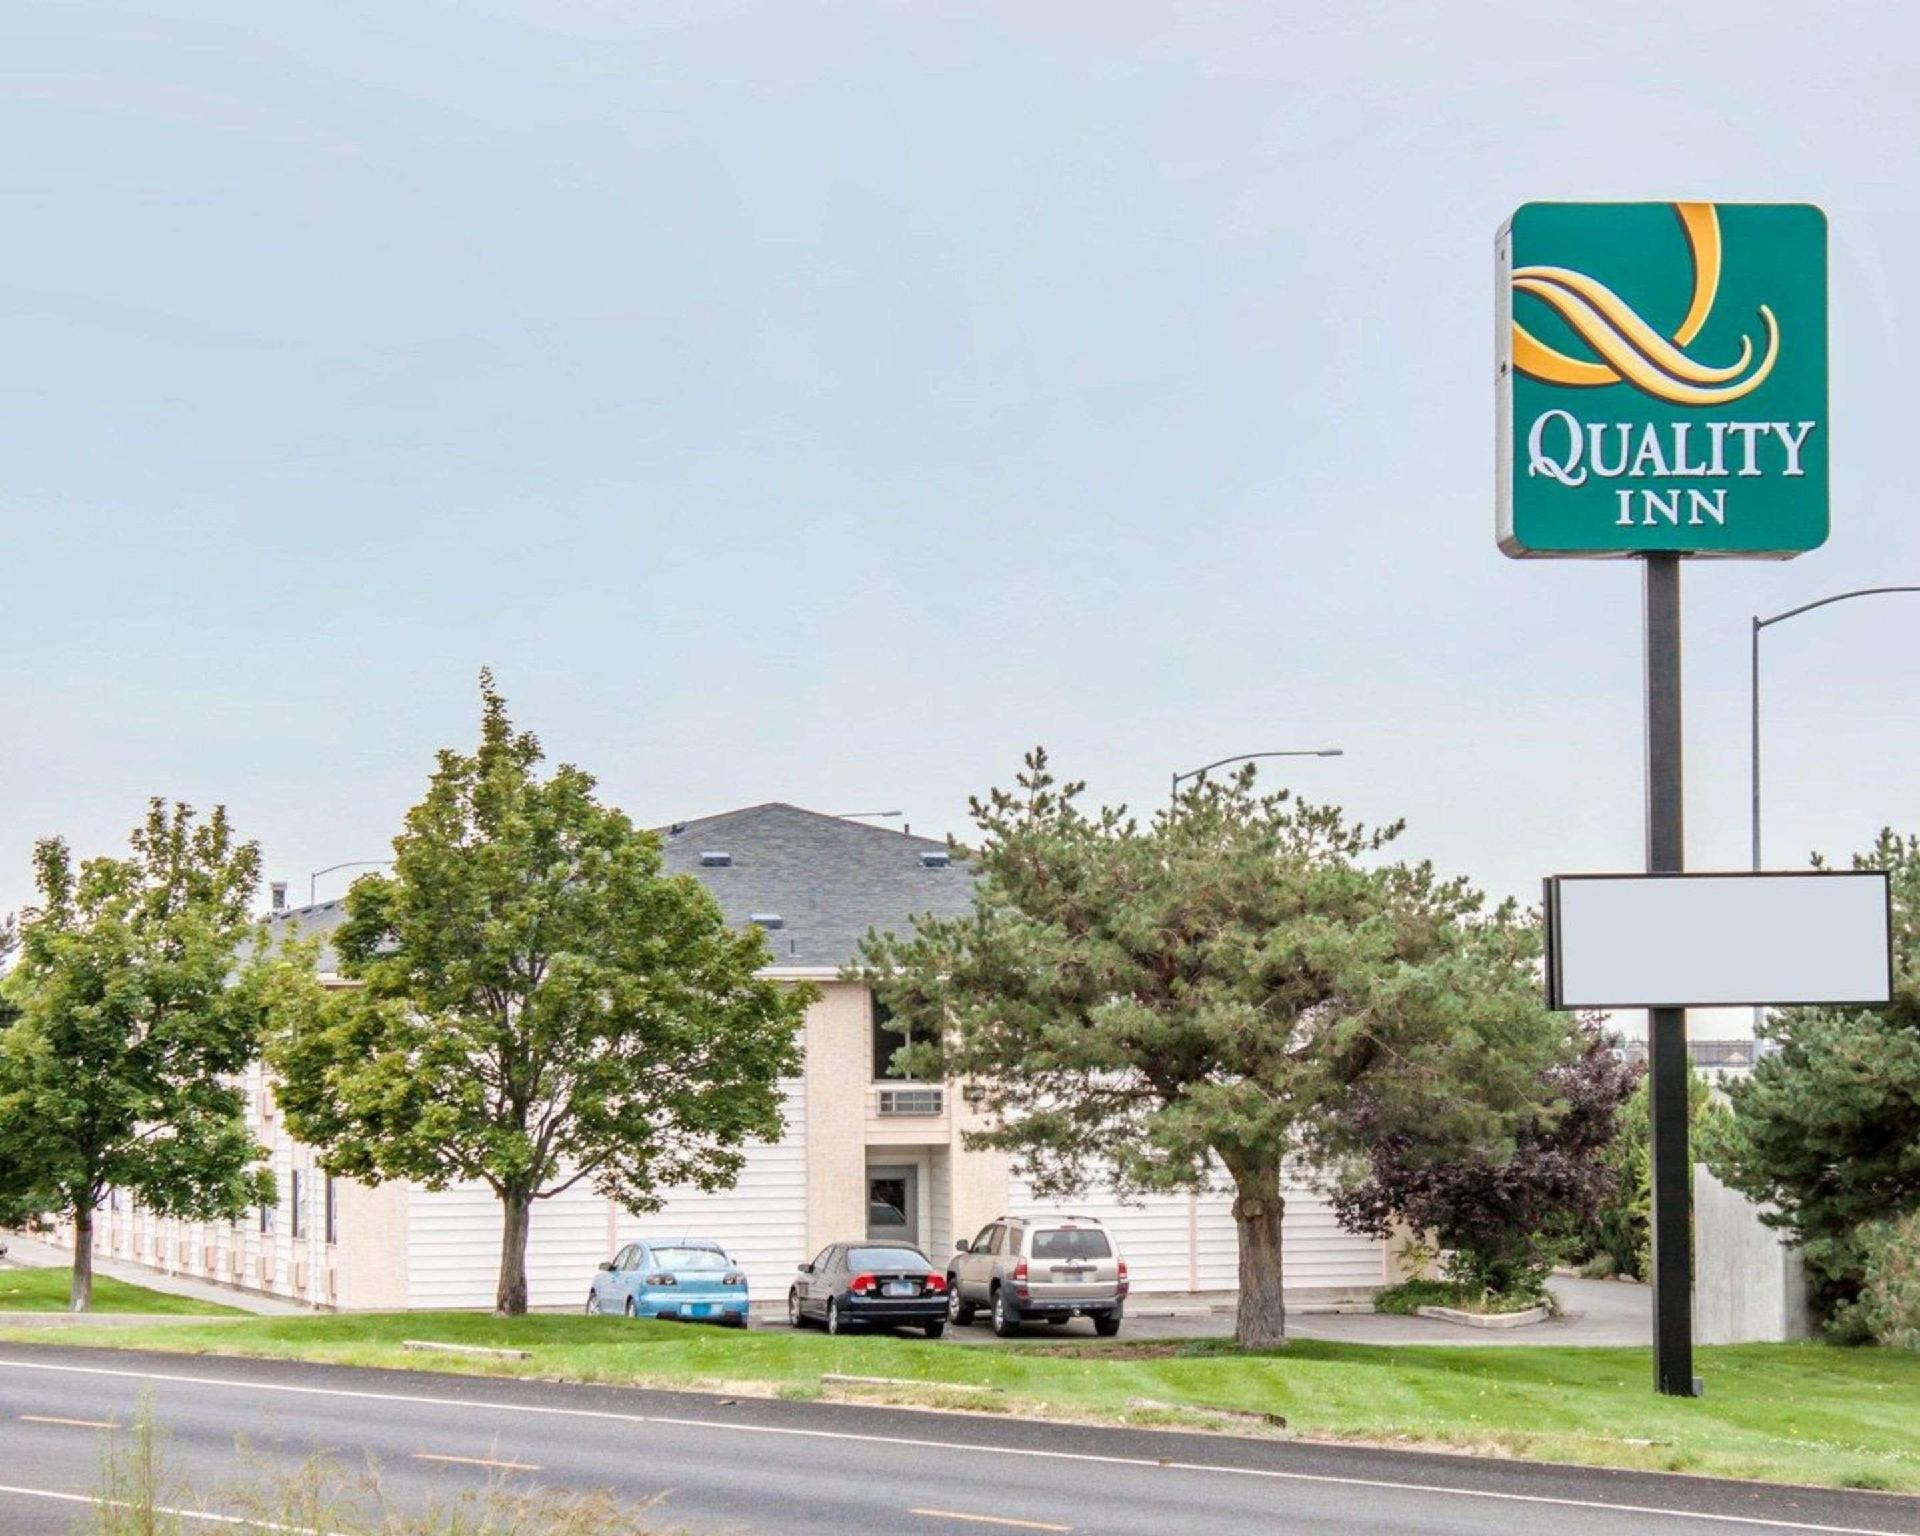 Quality Inn Airport image